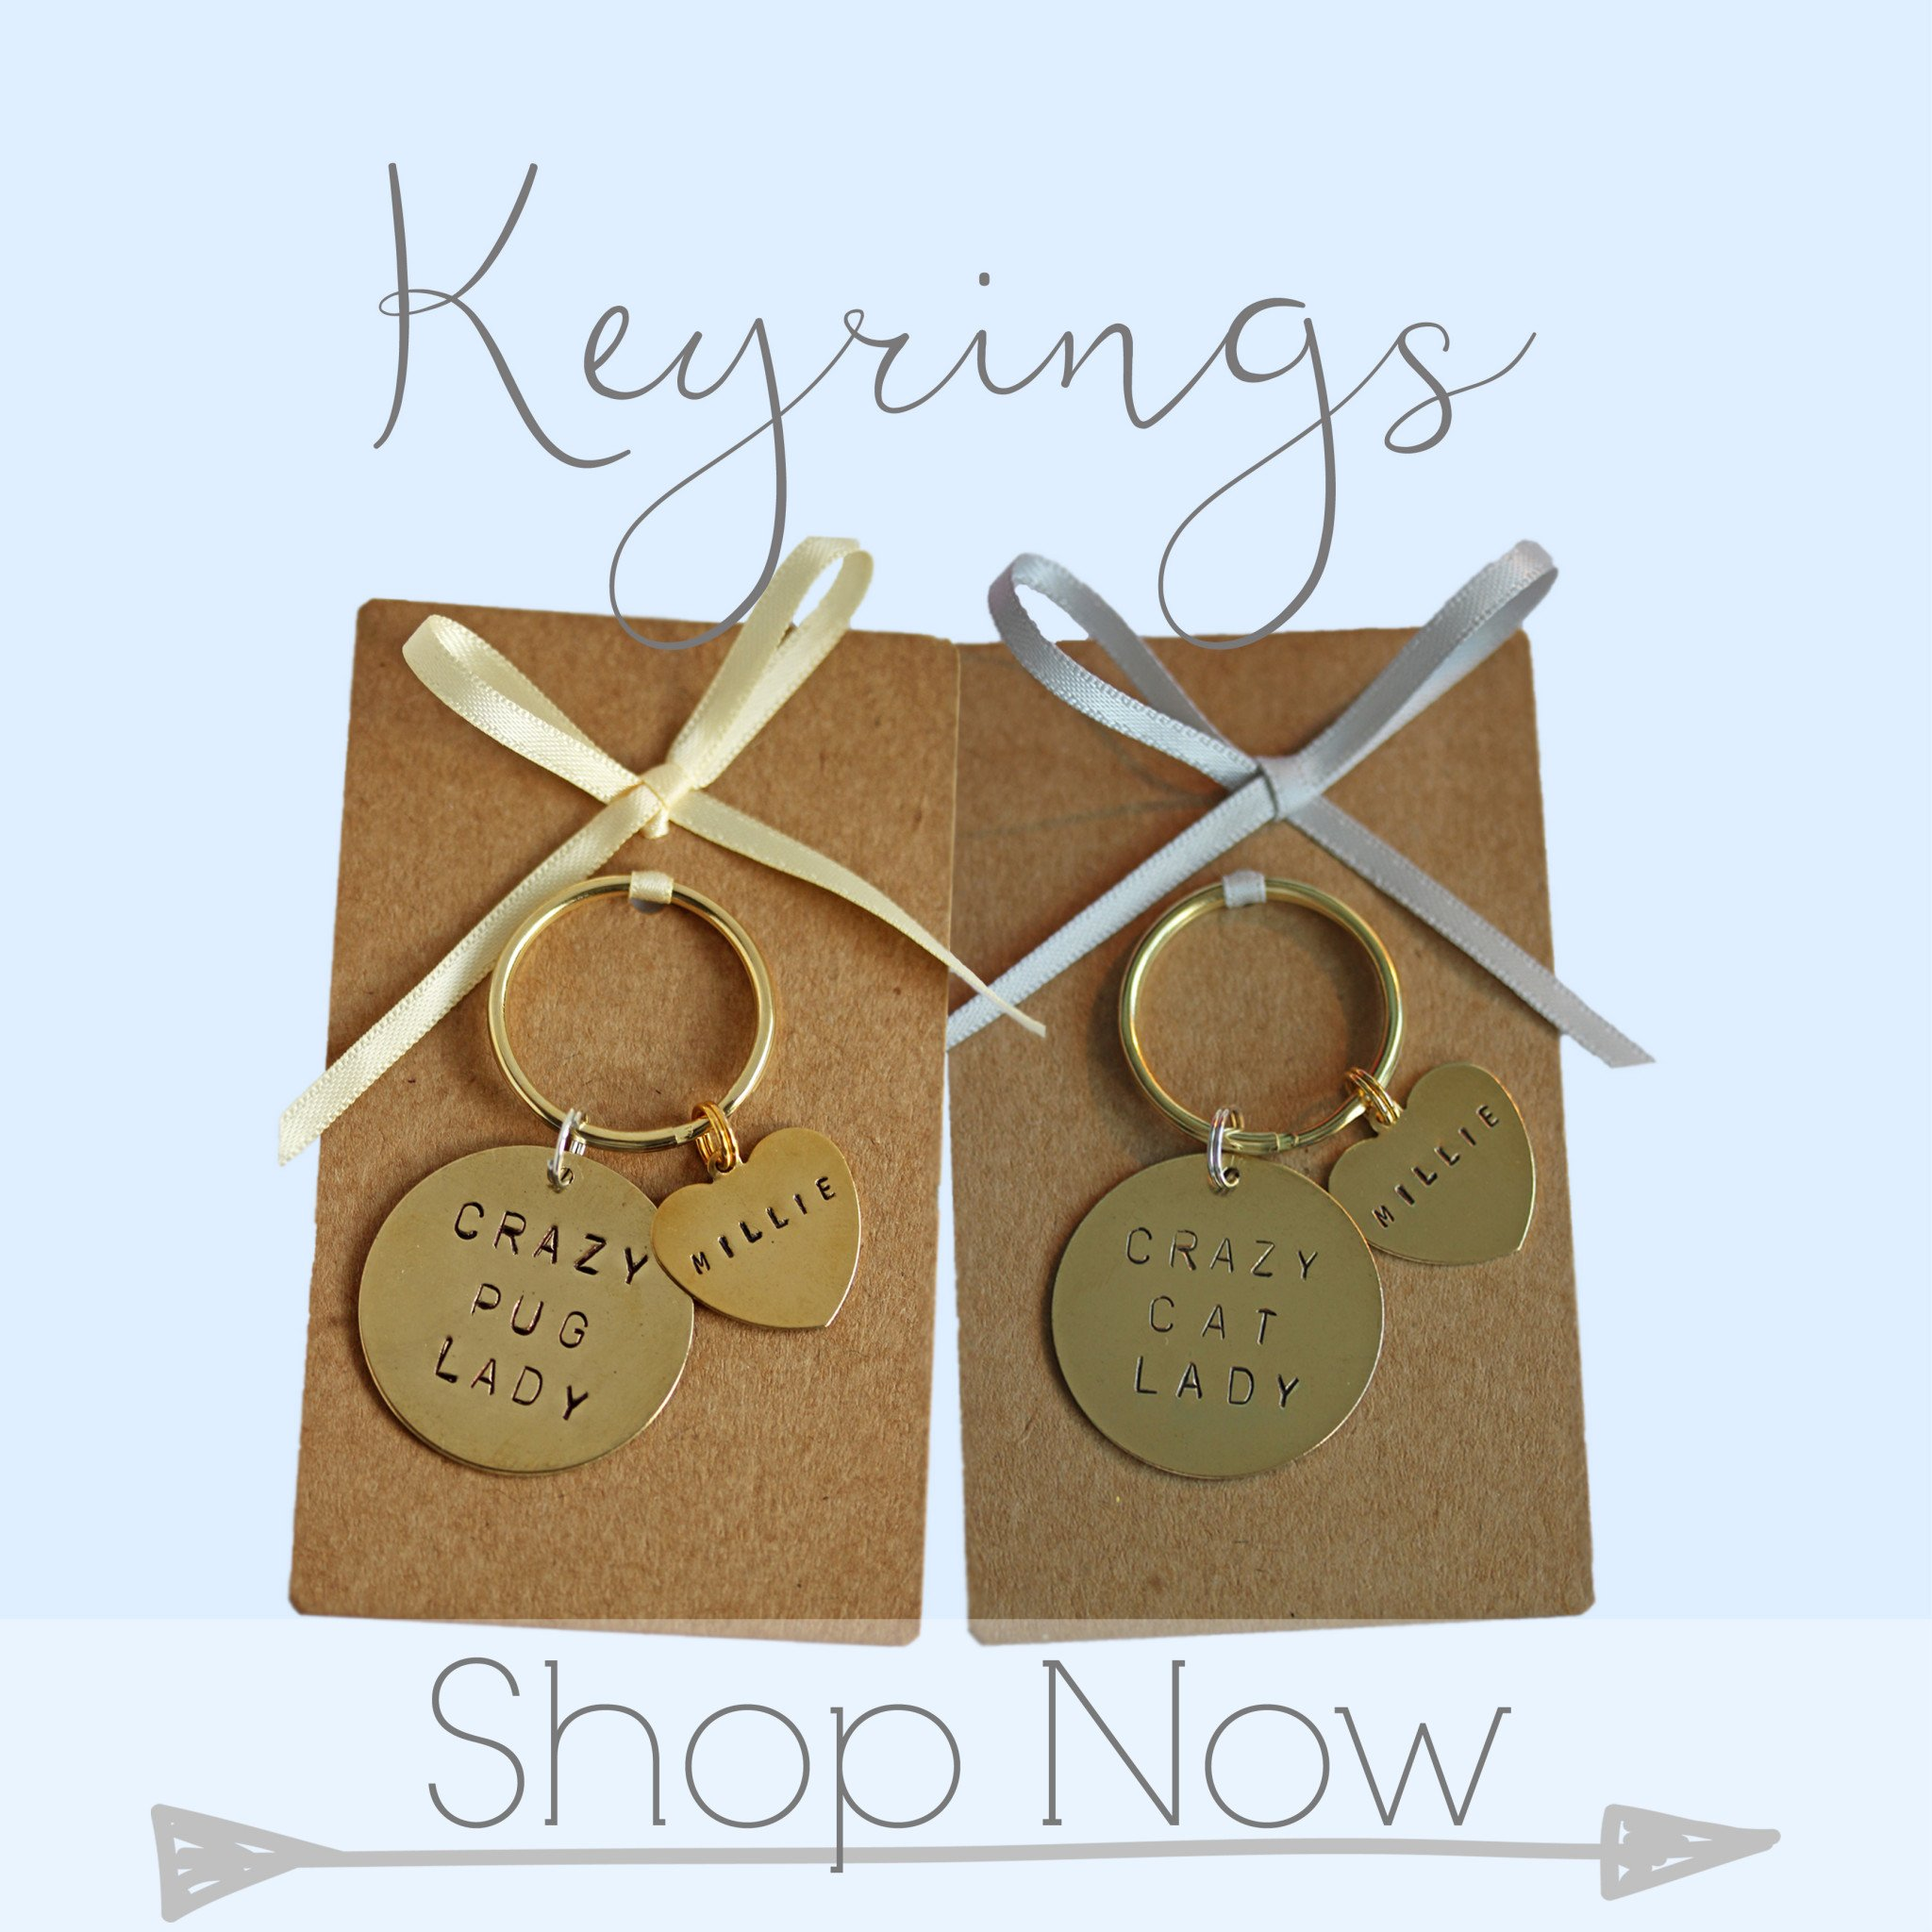 keyringsdifferent copy